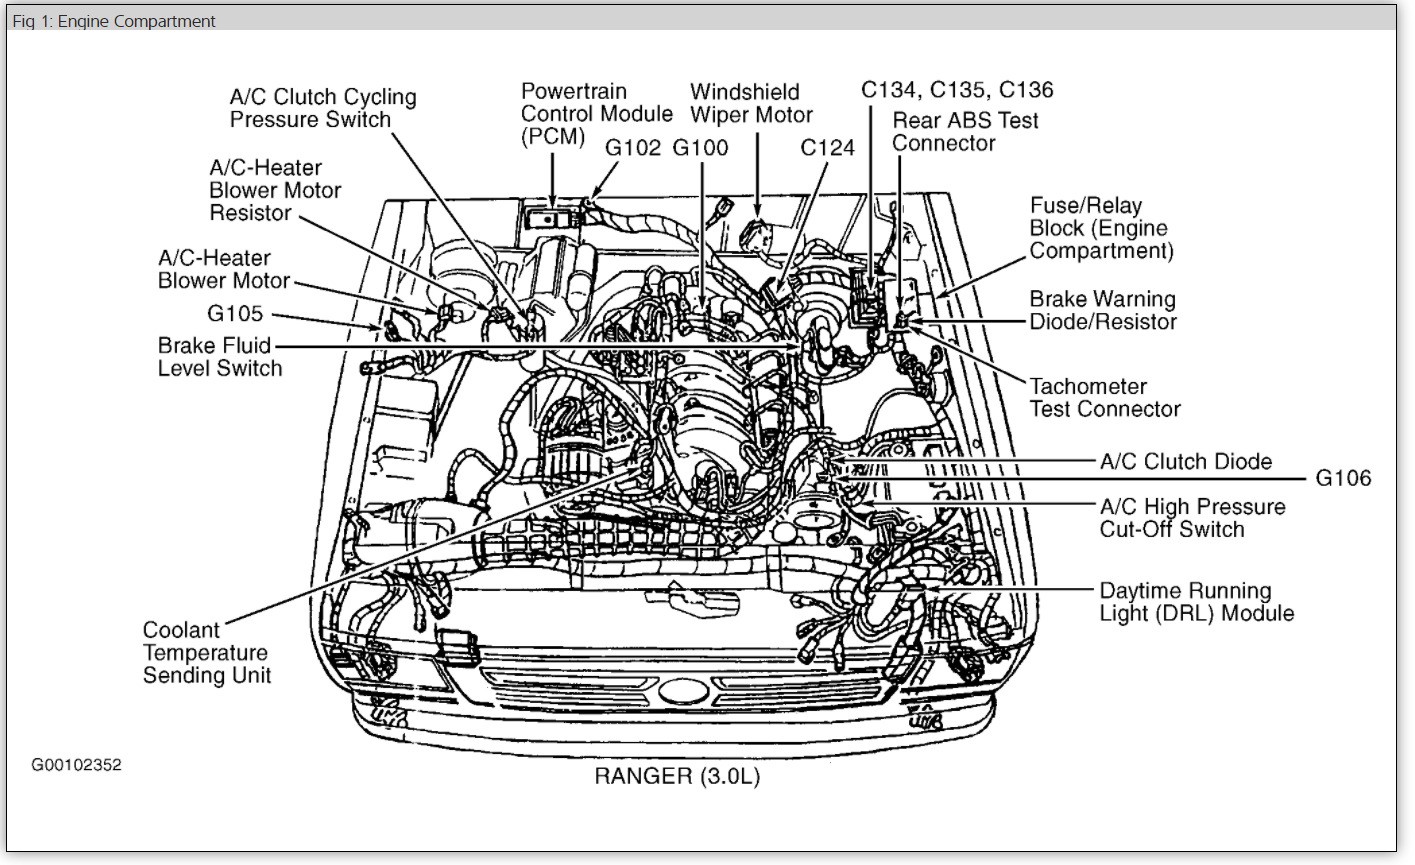 WHERE IS THE IGNITION MODULE?: Online Manuals Show the Module on ...